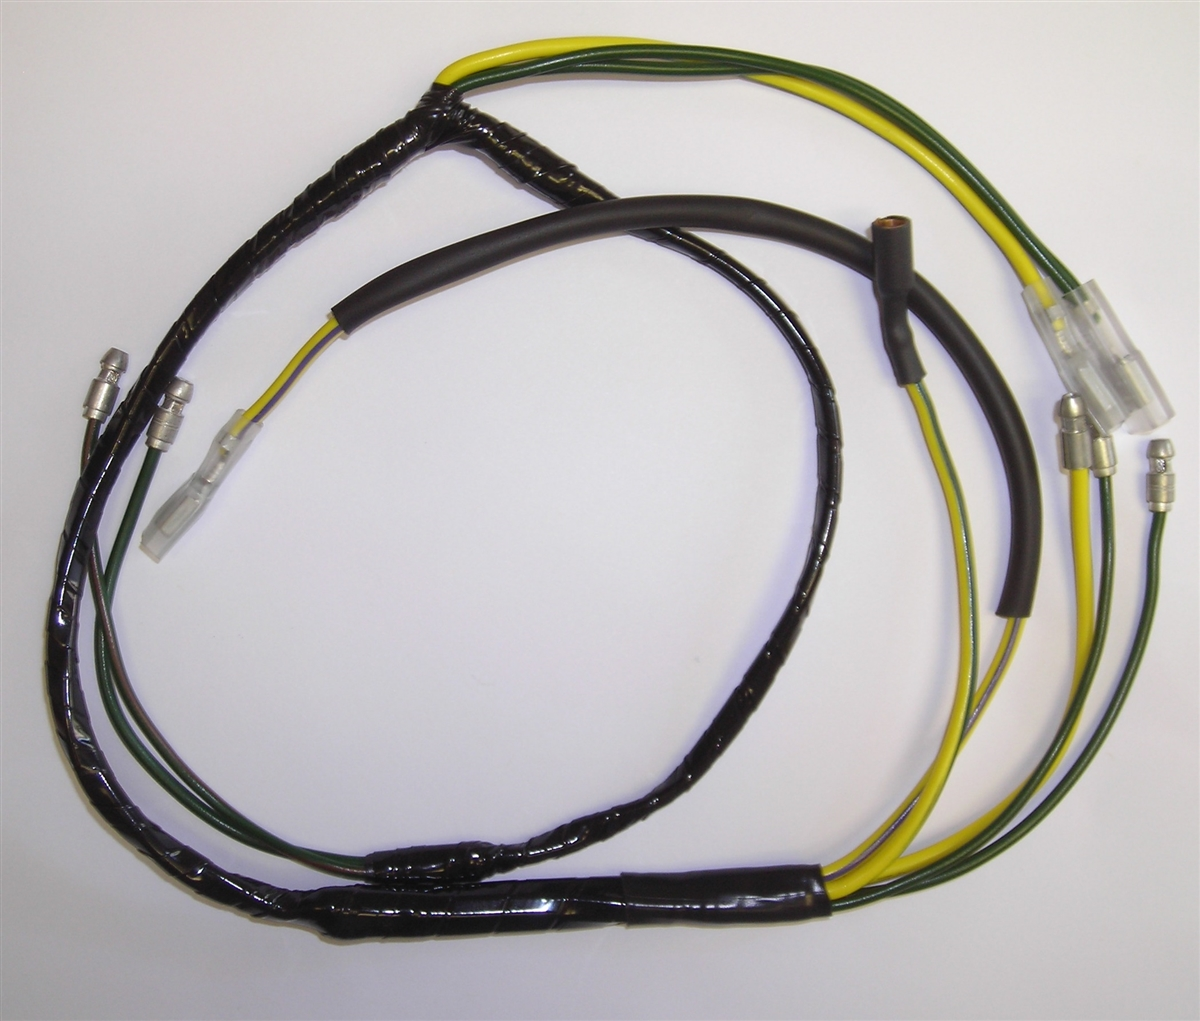 1560 2?1445434201 spitfire j type overdrive wiring harness Wiring Harness Wiring- Diagram at n-0.co